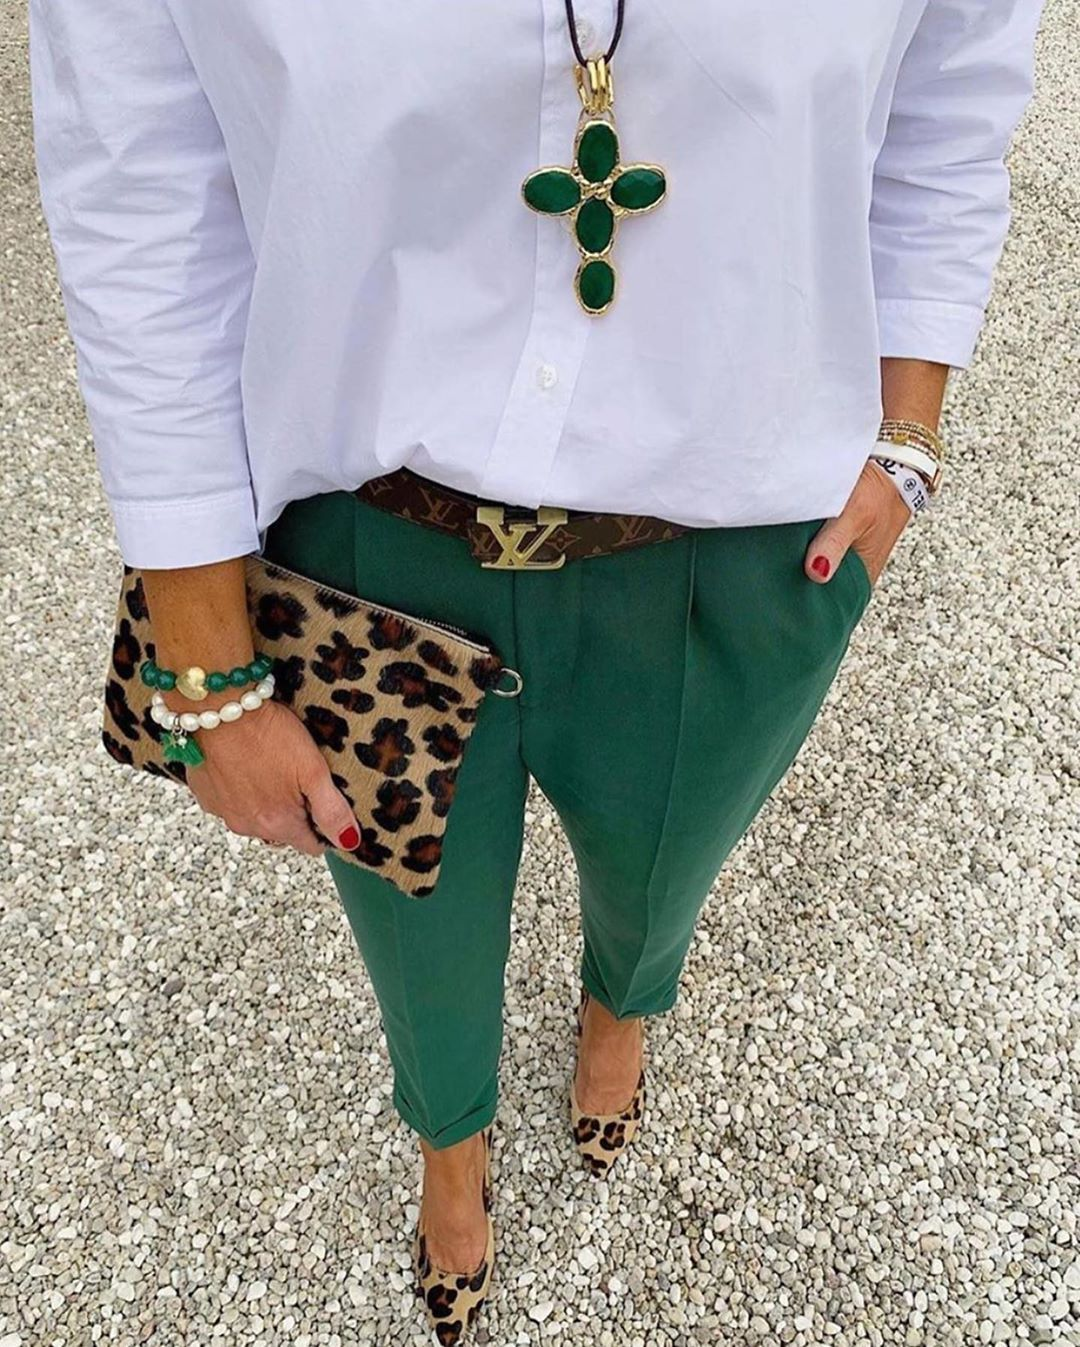 110 Fall Outfit Ideas For Women 2020 images 1